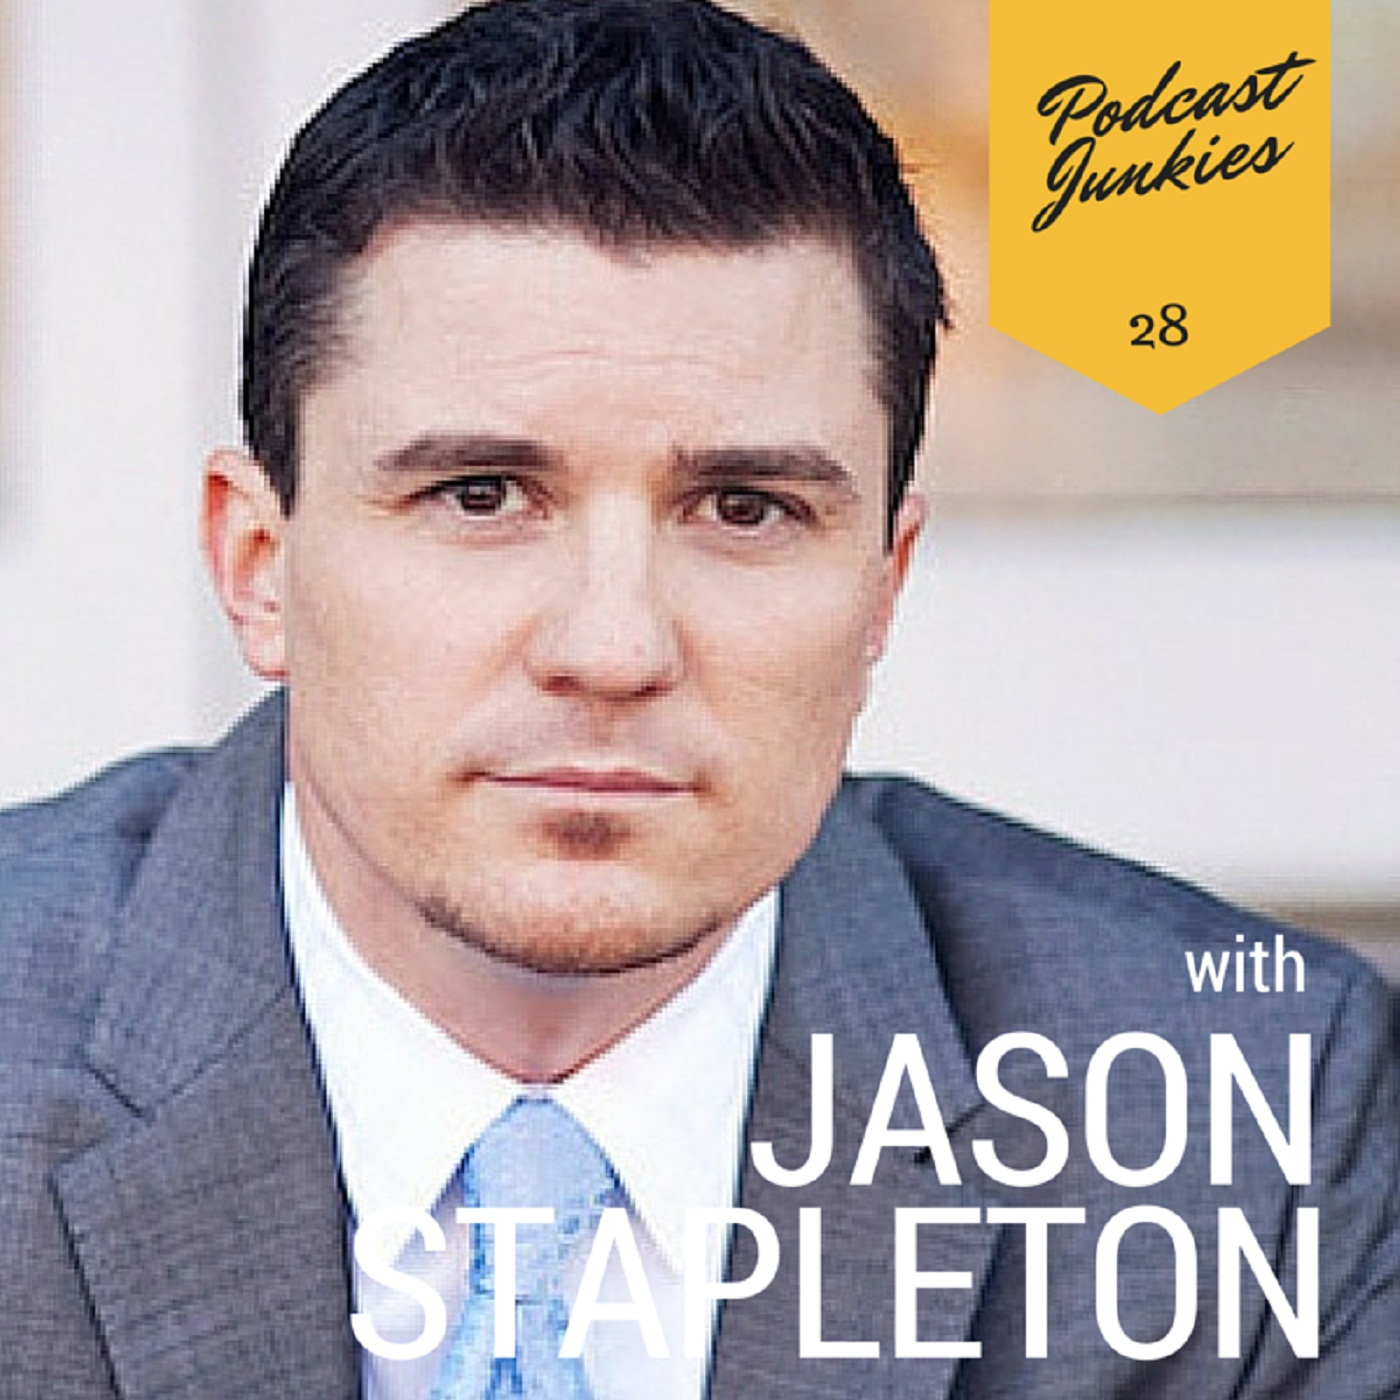 028  Jason Stapleton  | This Connoisseur of the Free Market is Taking His Show's Production to a New Level